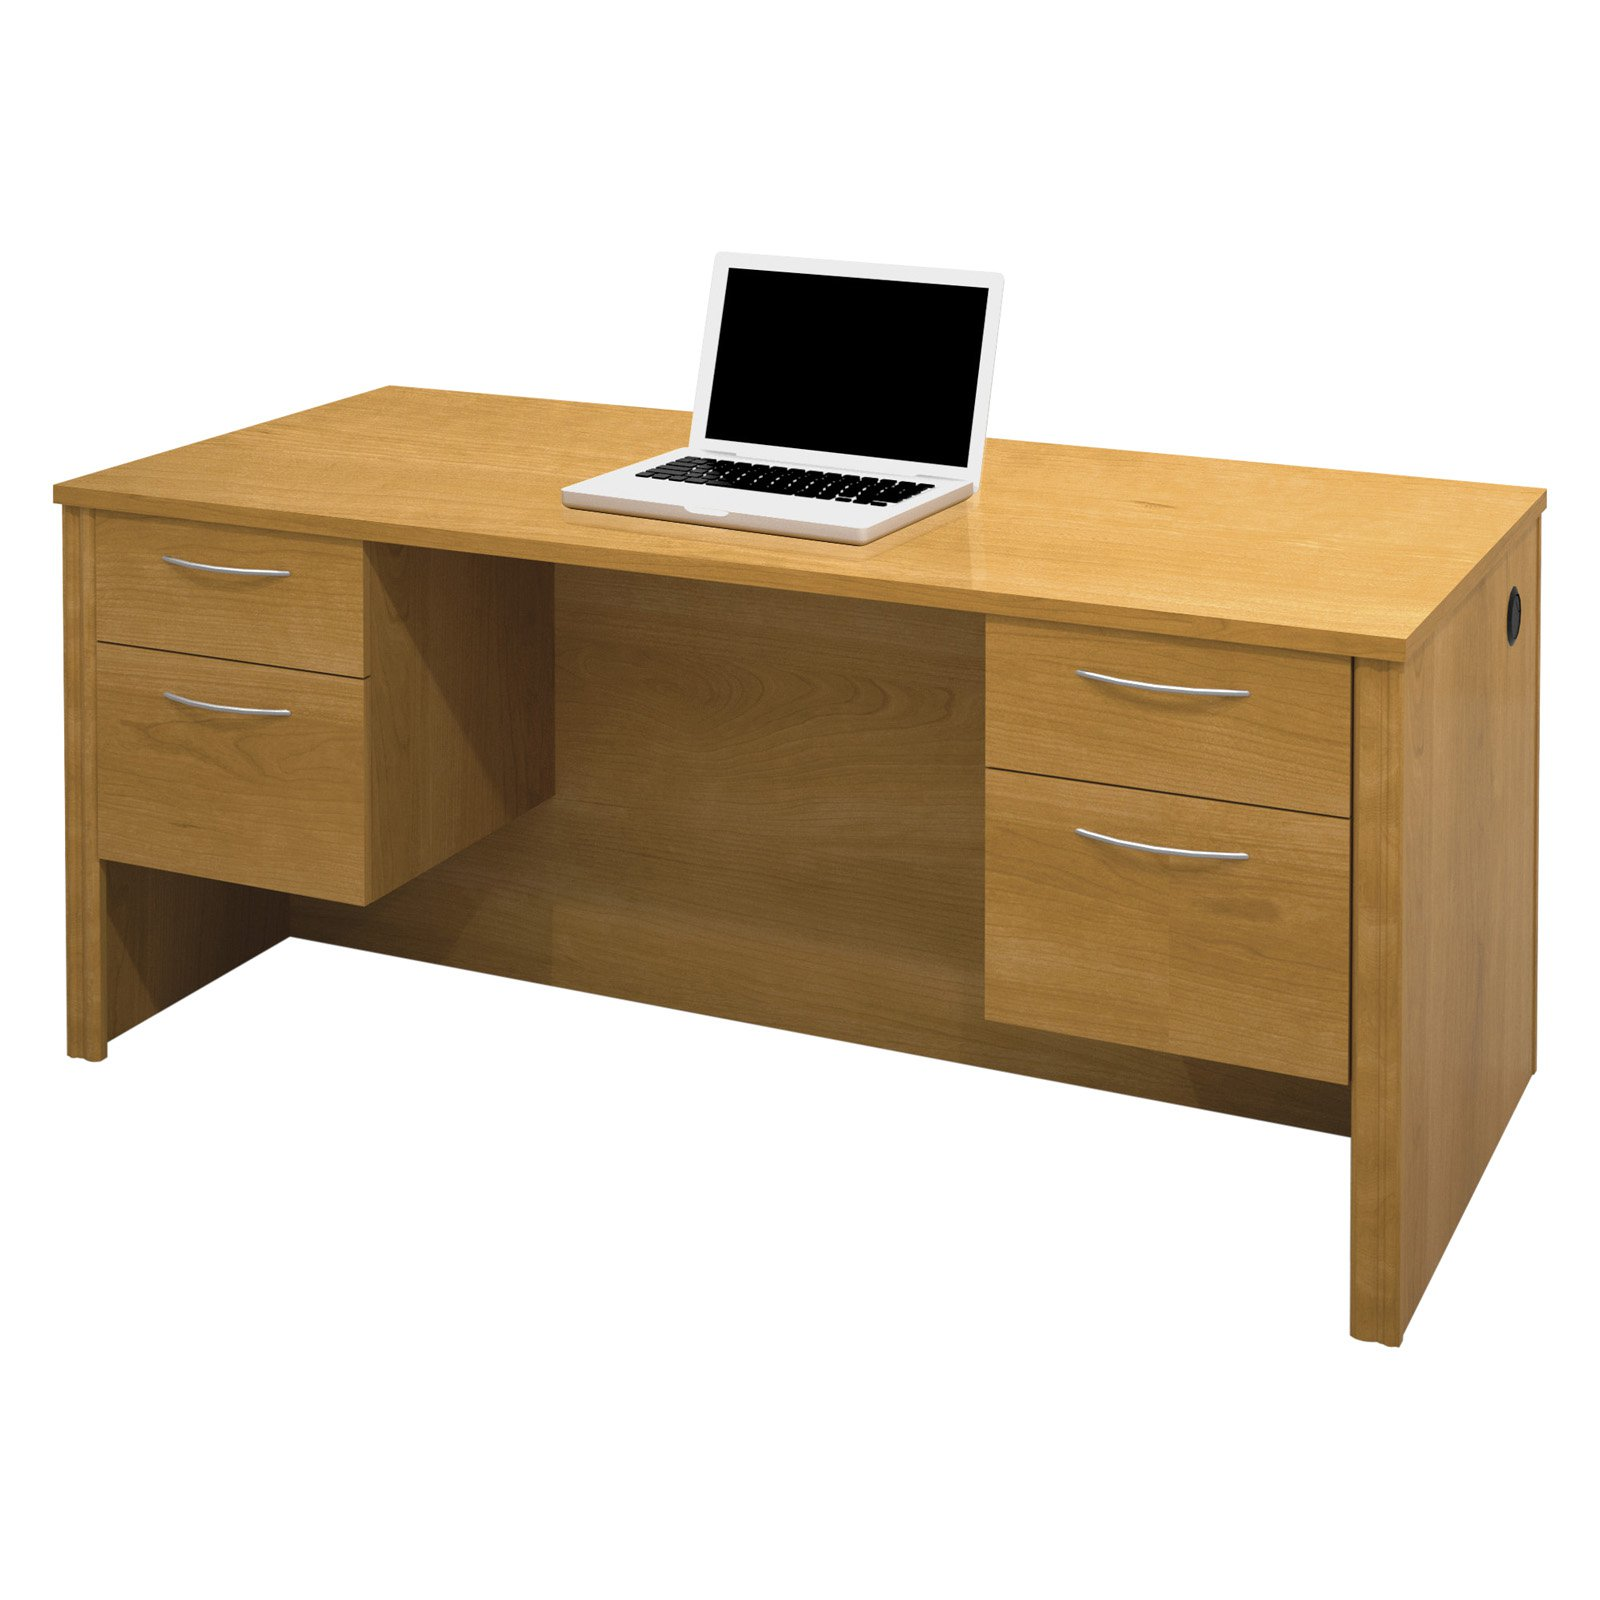 Bestar Embassy Executive Desk with Dual Half Peds, Cappuccino Cherry